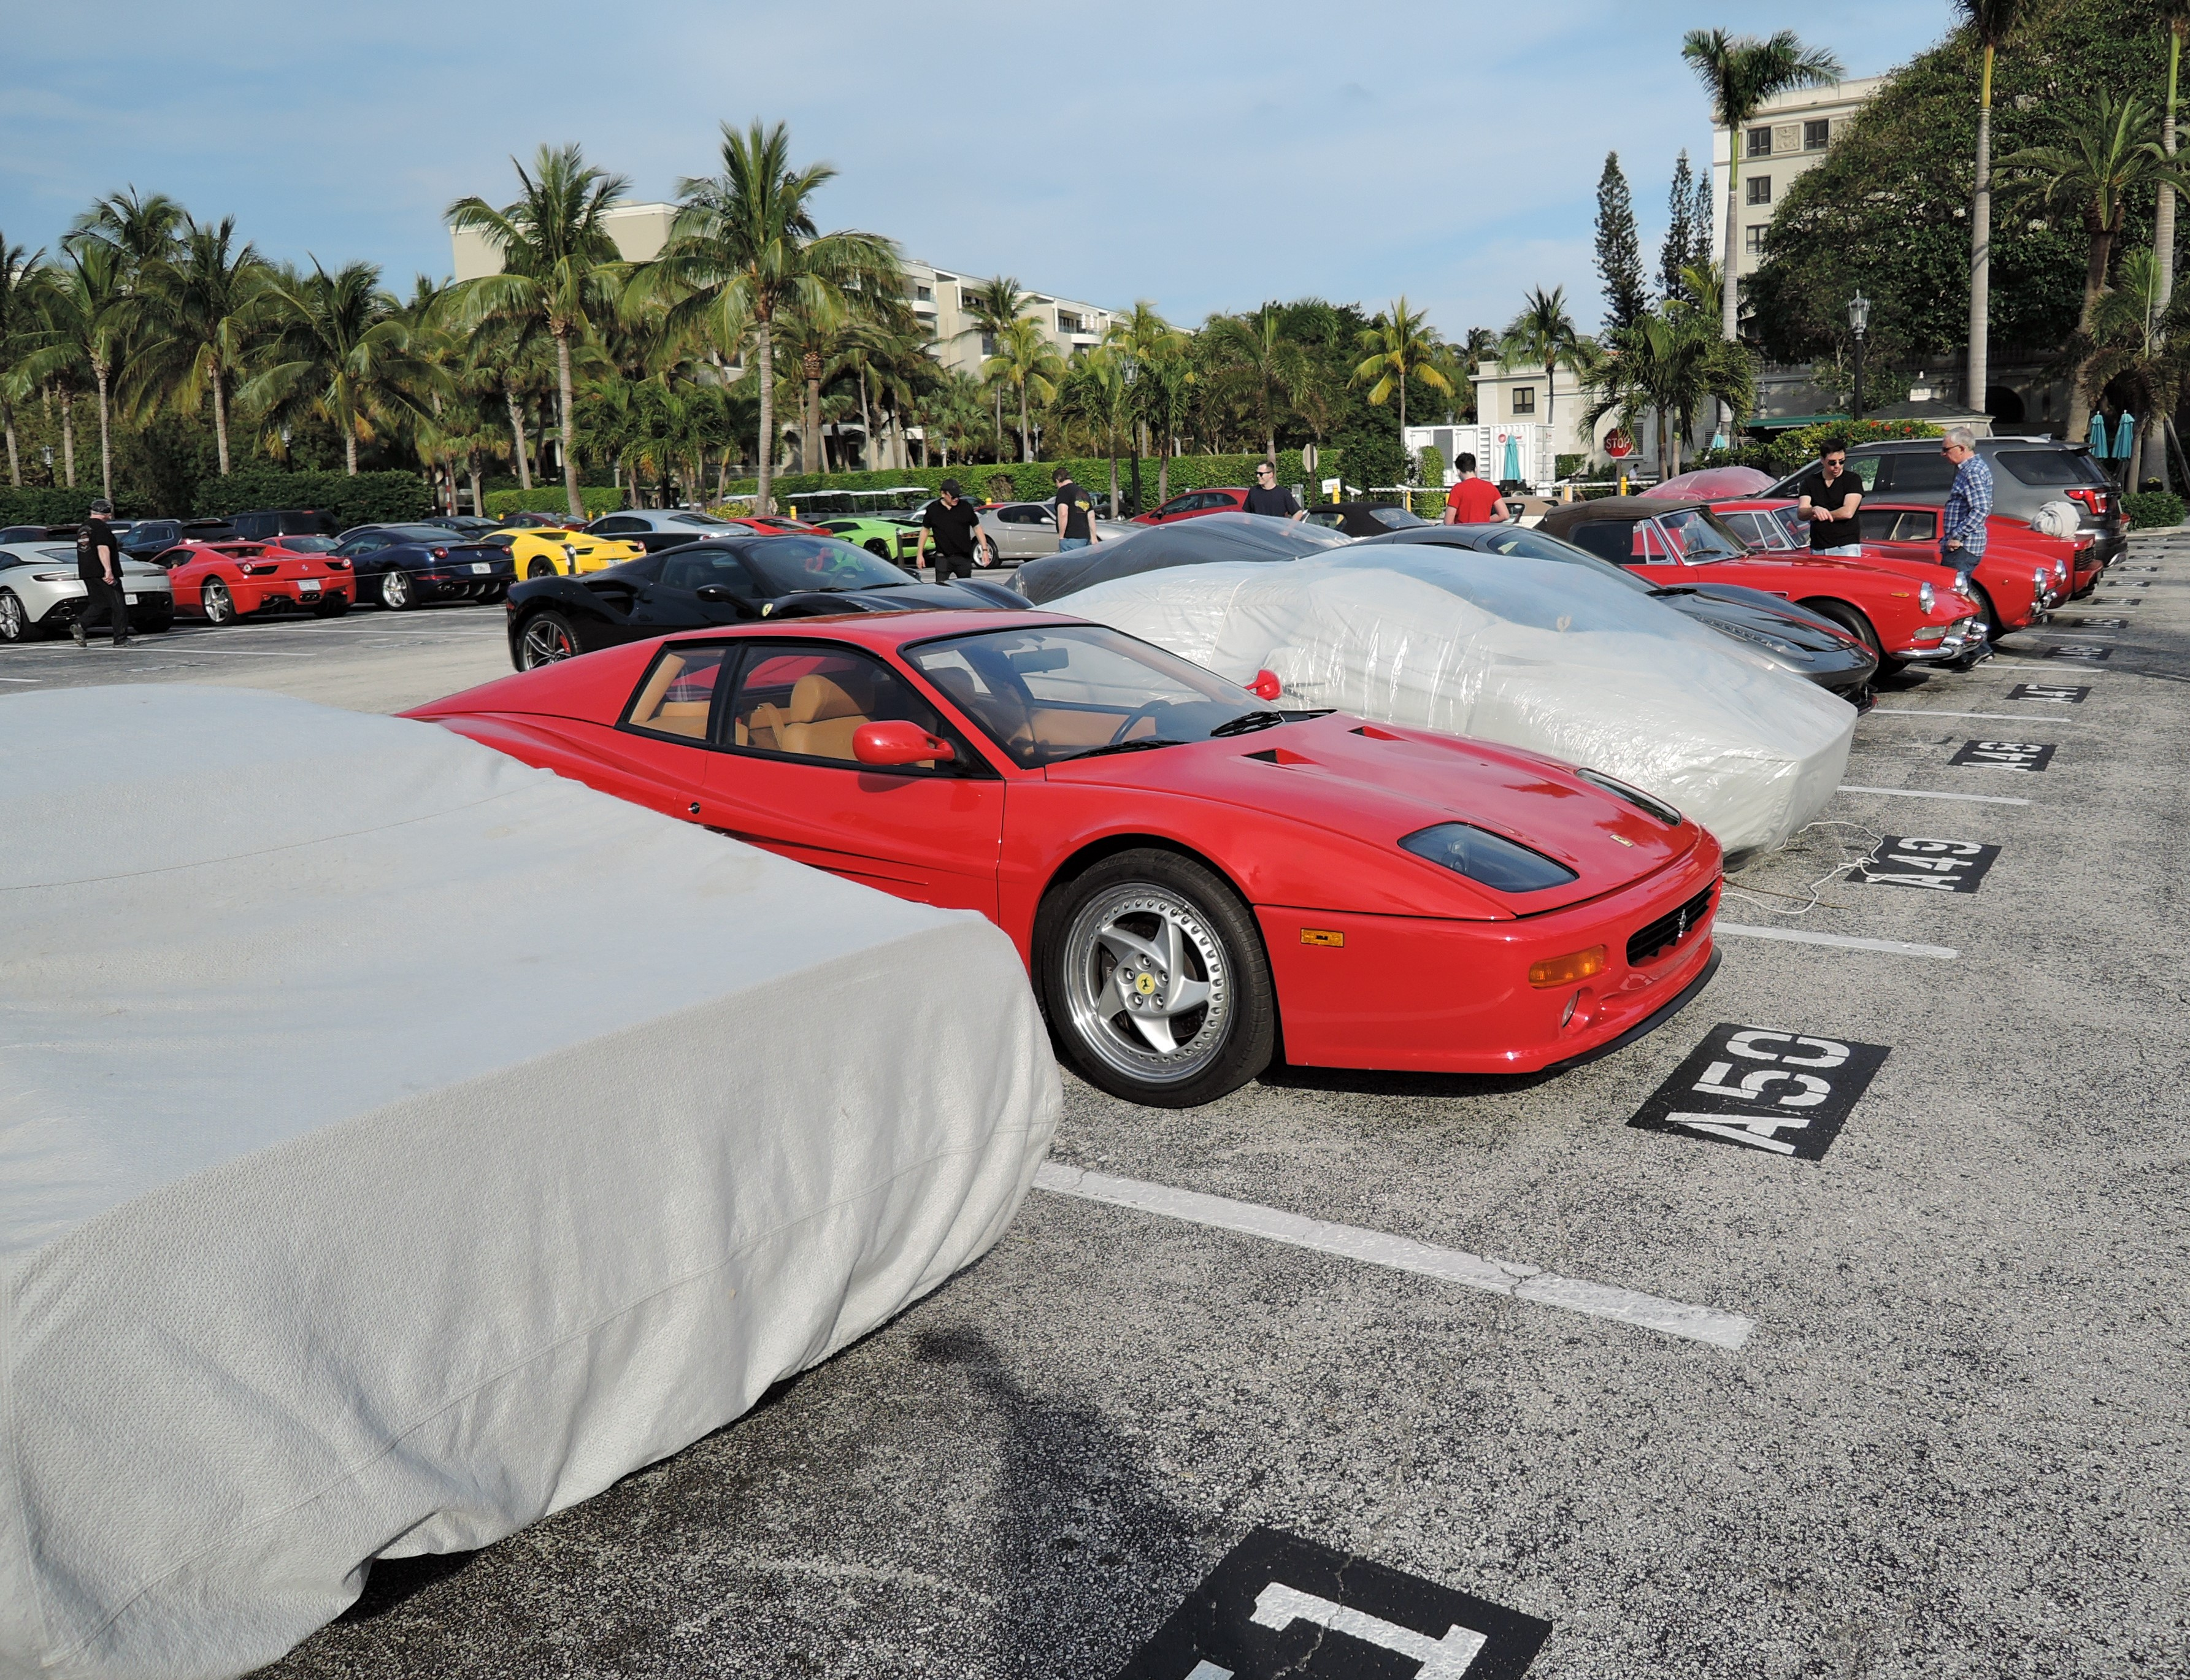 Breakers Hotel parking lot - Cavallino 2017 - the Breakers Hotel parking lot